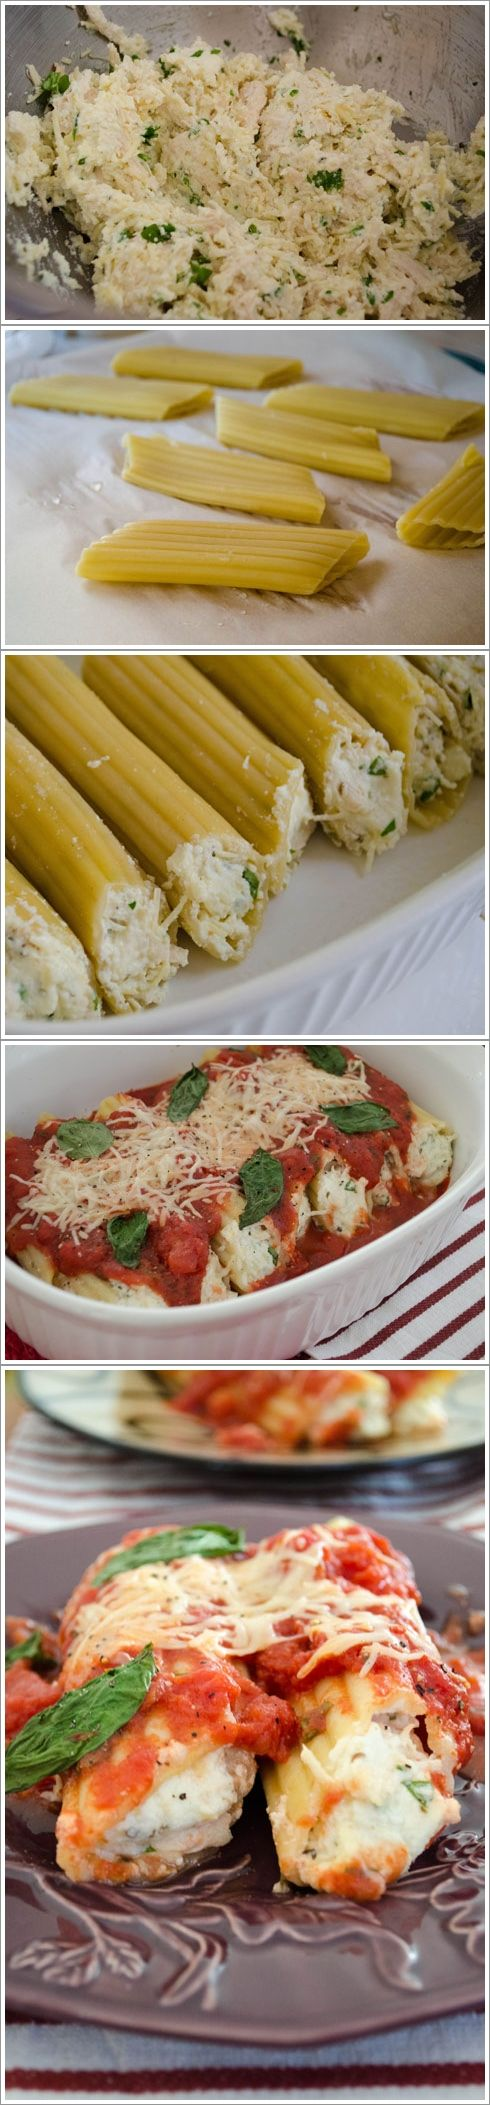 Parmesan Chicken Manicotti - this was super yummy! I love the chicken in the filling. I added a clove of garlic to the filling and another to the sauce. I also added 1/2 tsp red pepper flakes to the sauce. Would also add spinach